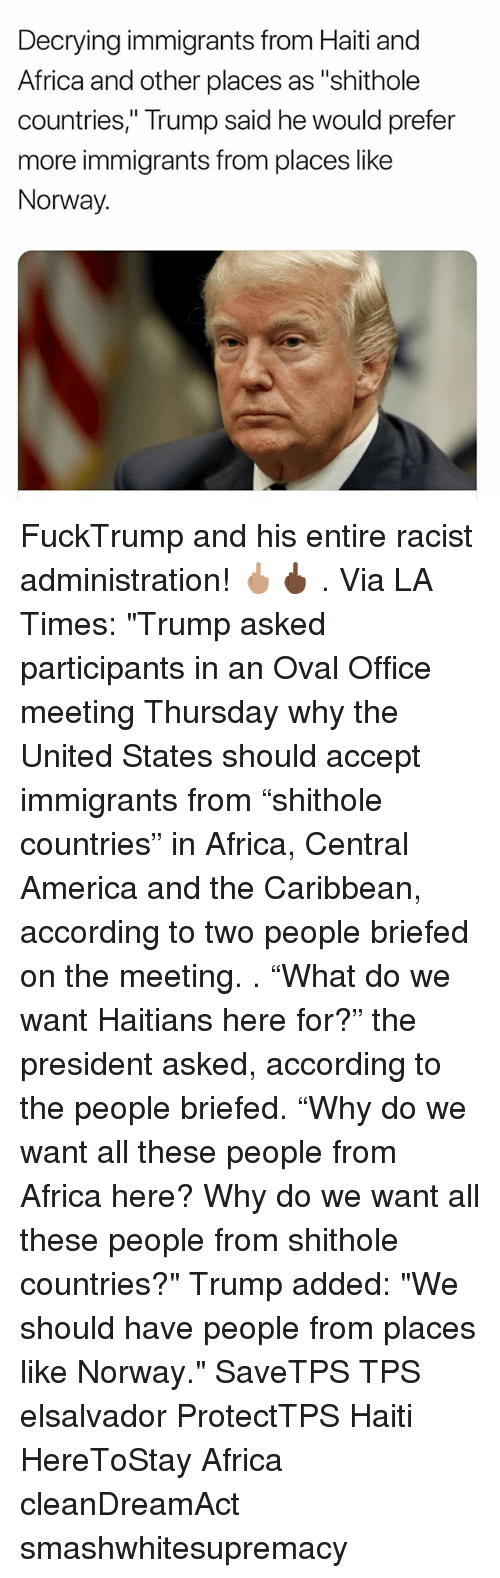 "tps: Decrying immigrants from Haiti and  Africa and other places as ""shithole  countries,"" Trump said he would prefer  more immigrants from places like  Norway. FuckTrump and his entire racist administration! 🖕🏽🖕🏿 . Via LA Times: ""Trump asked participants in an Oval Office meeting Thursday why the United States should accept immigrants from ""shithole countries"" in Africa, Central America and the Caribbean, according to two people briefed on the meeting. . ""What do we want Haitians here for?"" the president asked, according to the people briefed. ""Why do we want all these people from Africa here? Why do we want all these people from shithole countries?"" Trump added: ""We should have people from places like Norway."" SaveTPS TPS elsalvador ProtectTPS Haiti HereToStay Africa cleanDreamAct smashwhitesupremacy"